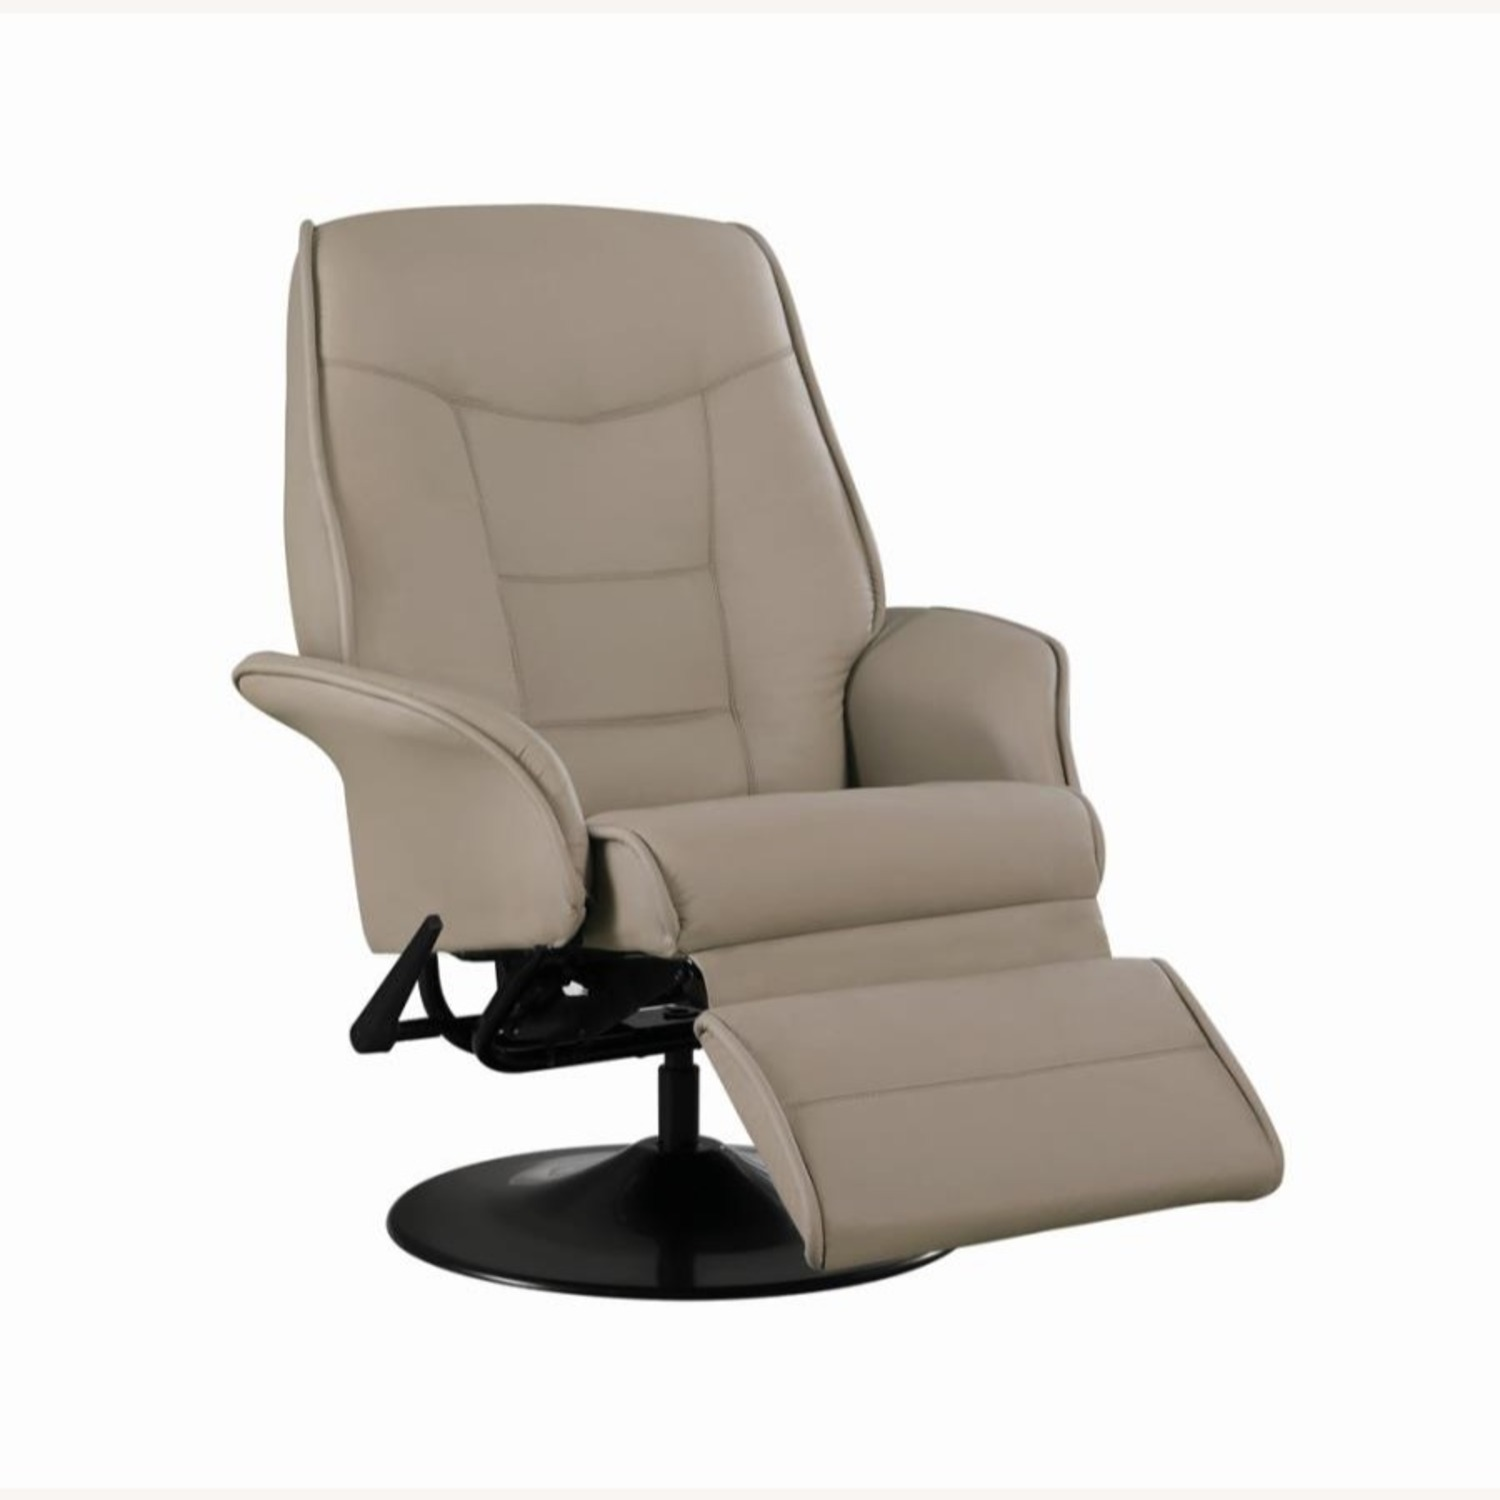 Swivel Recliner In Classic Beige Leatherette - image-1